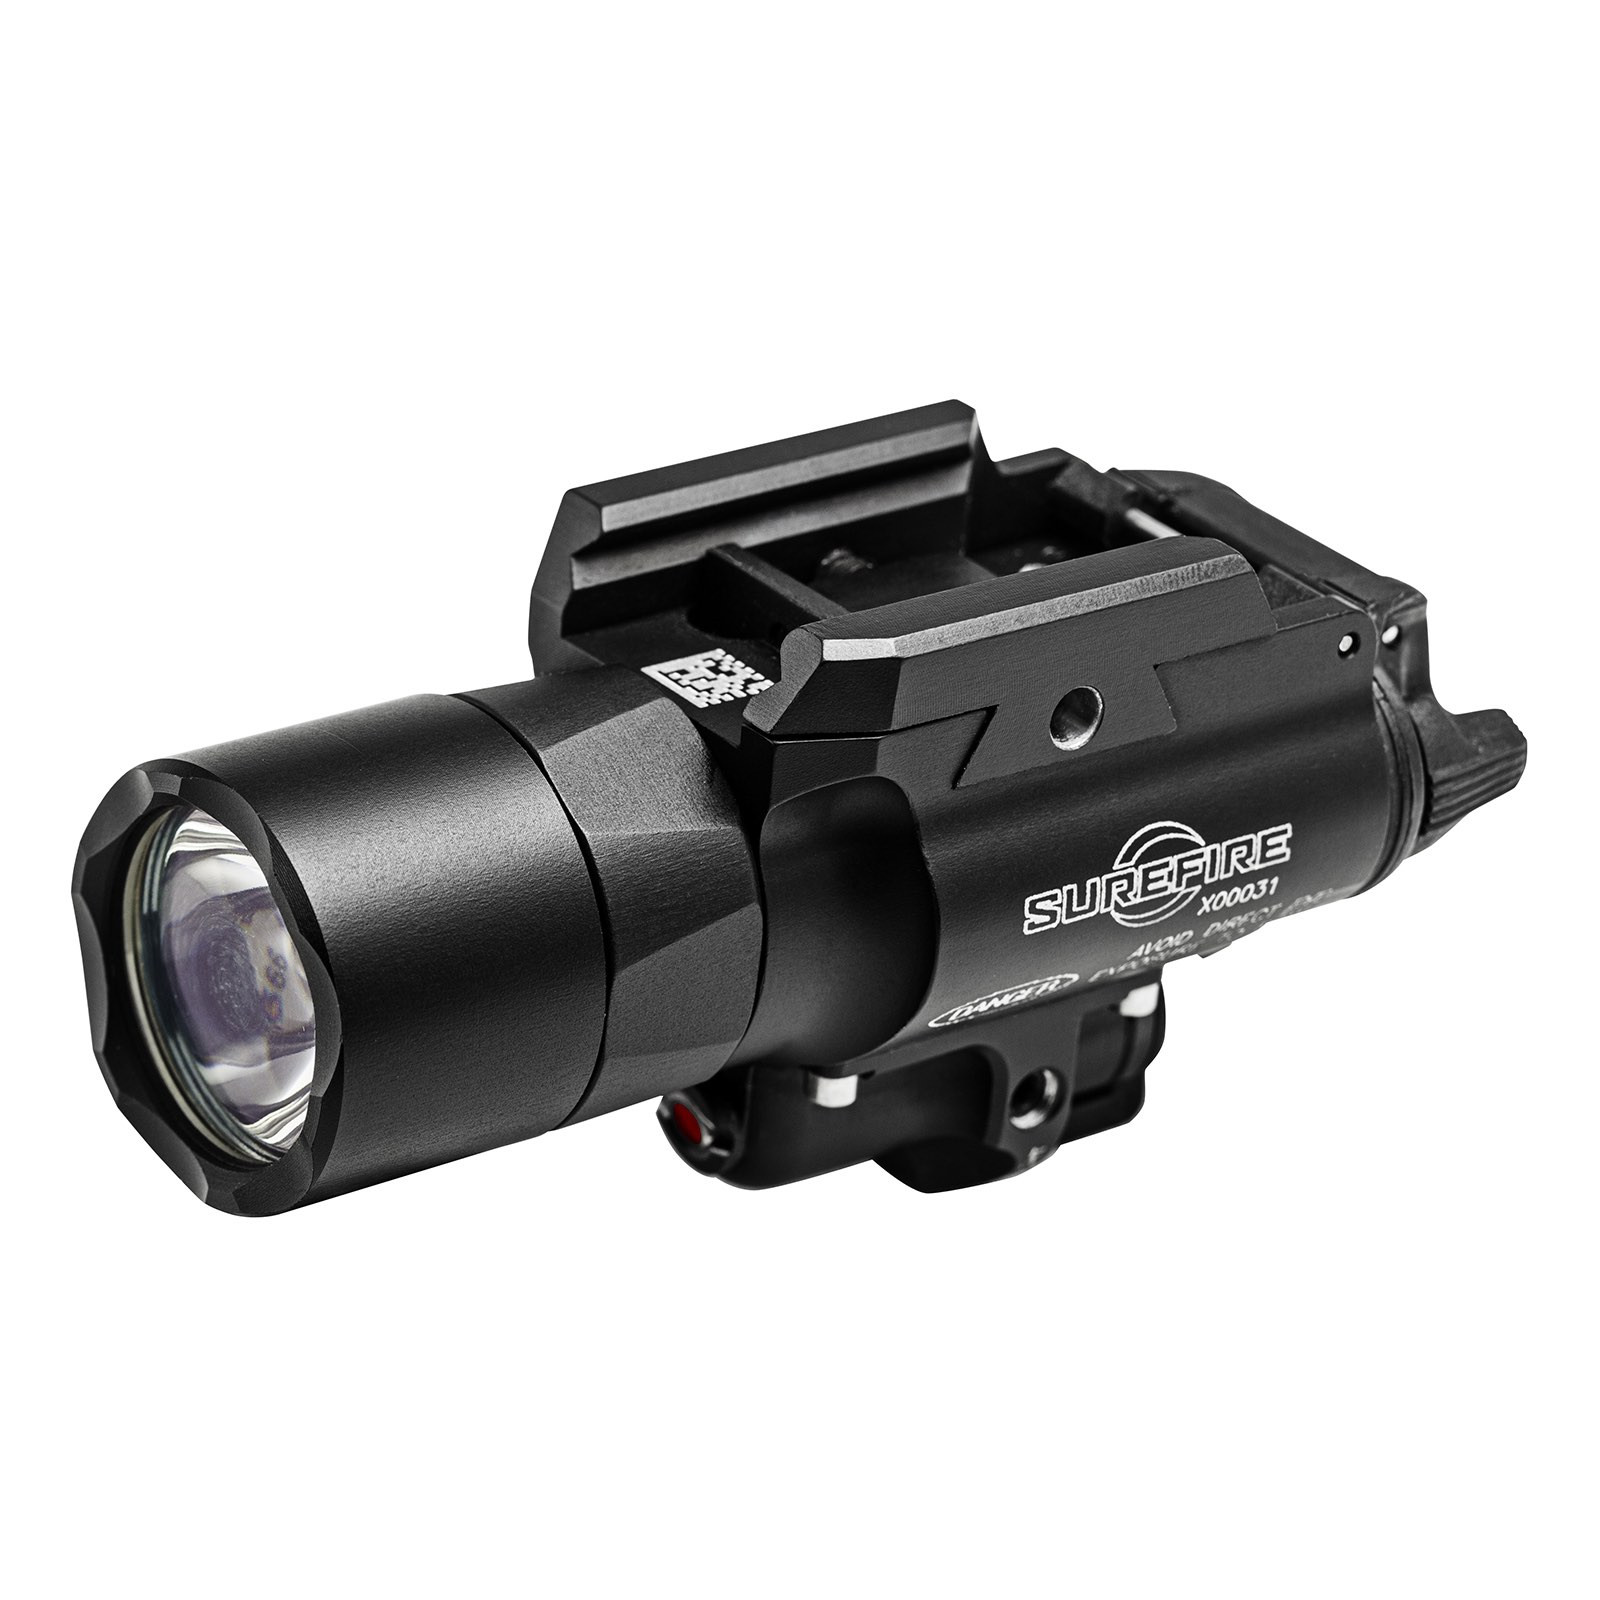 New SureFire X400 Ultra Red Laser